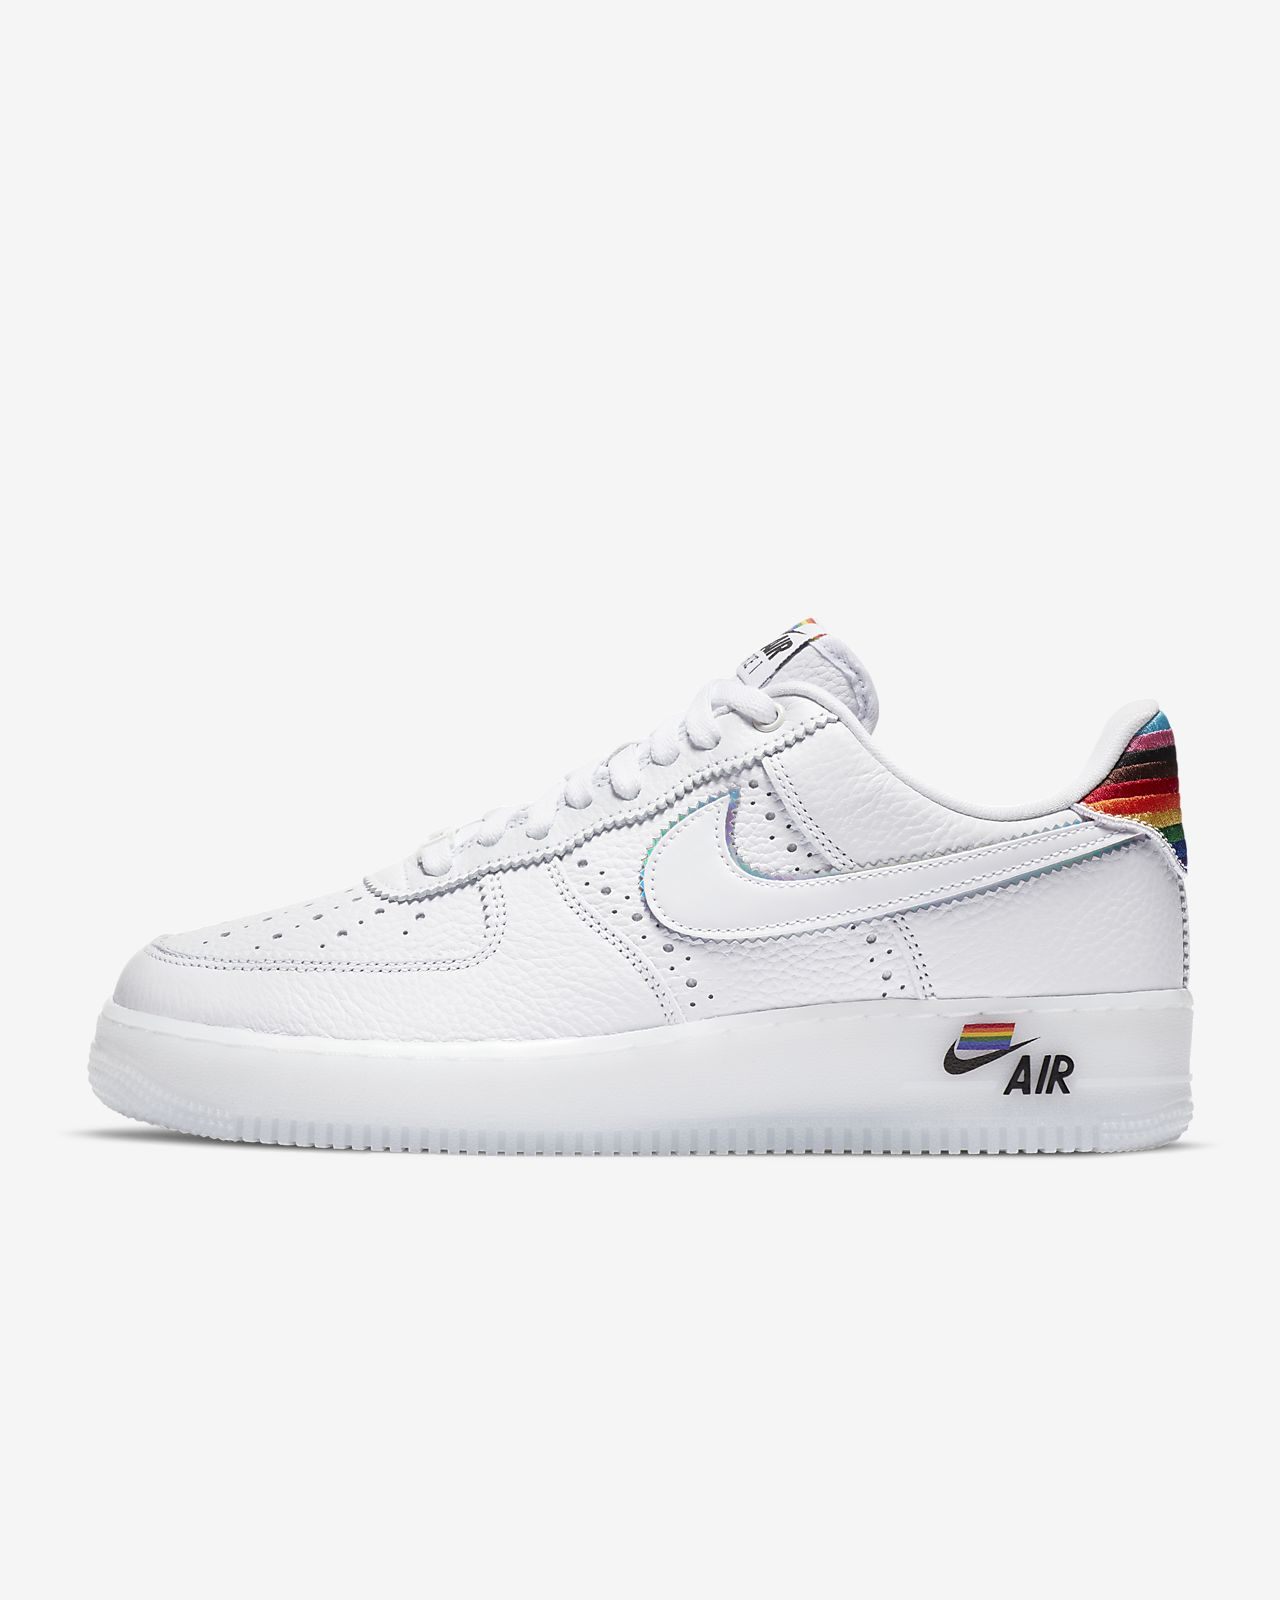 Chaussure Nike Air Force 1 BETRUE pour Homme